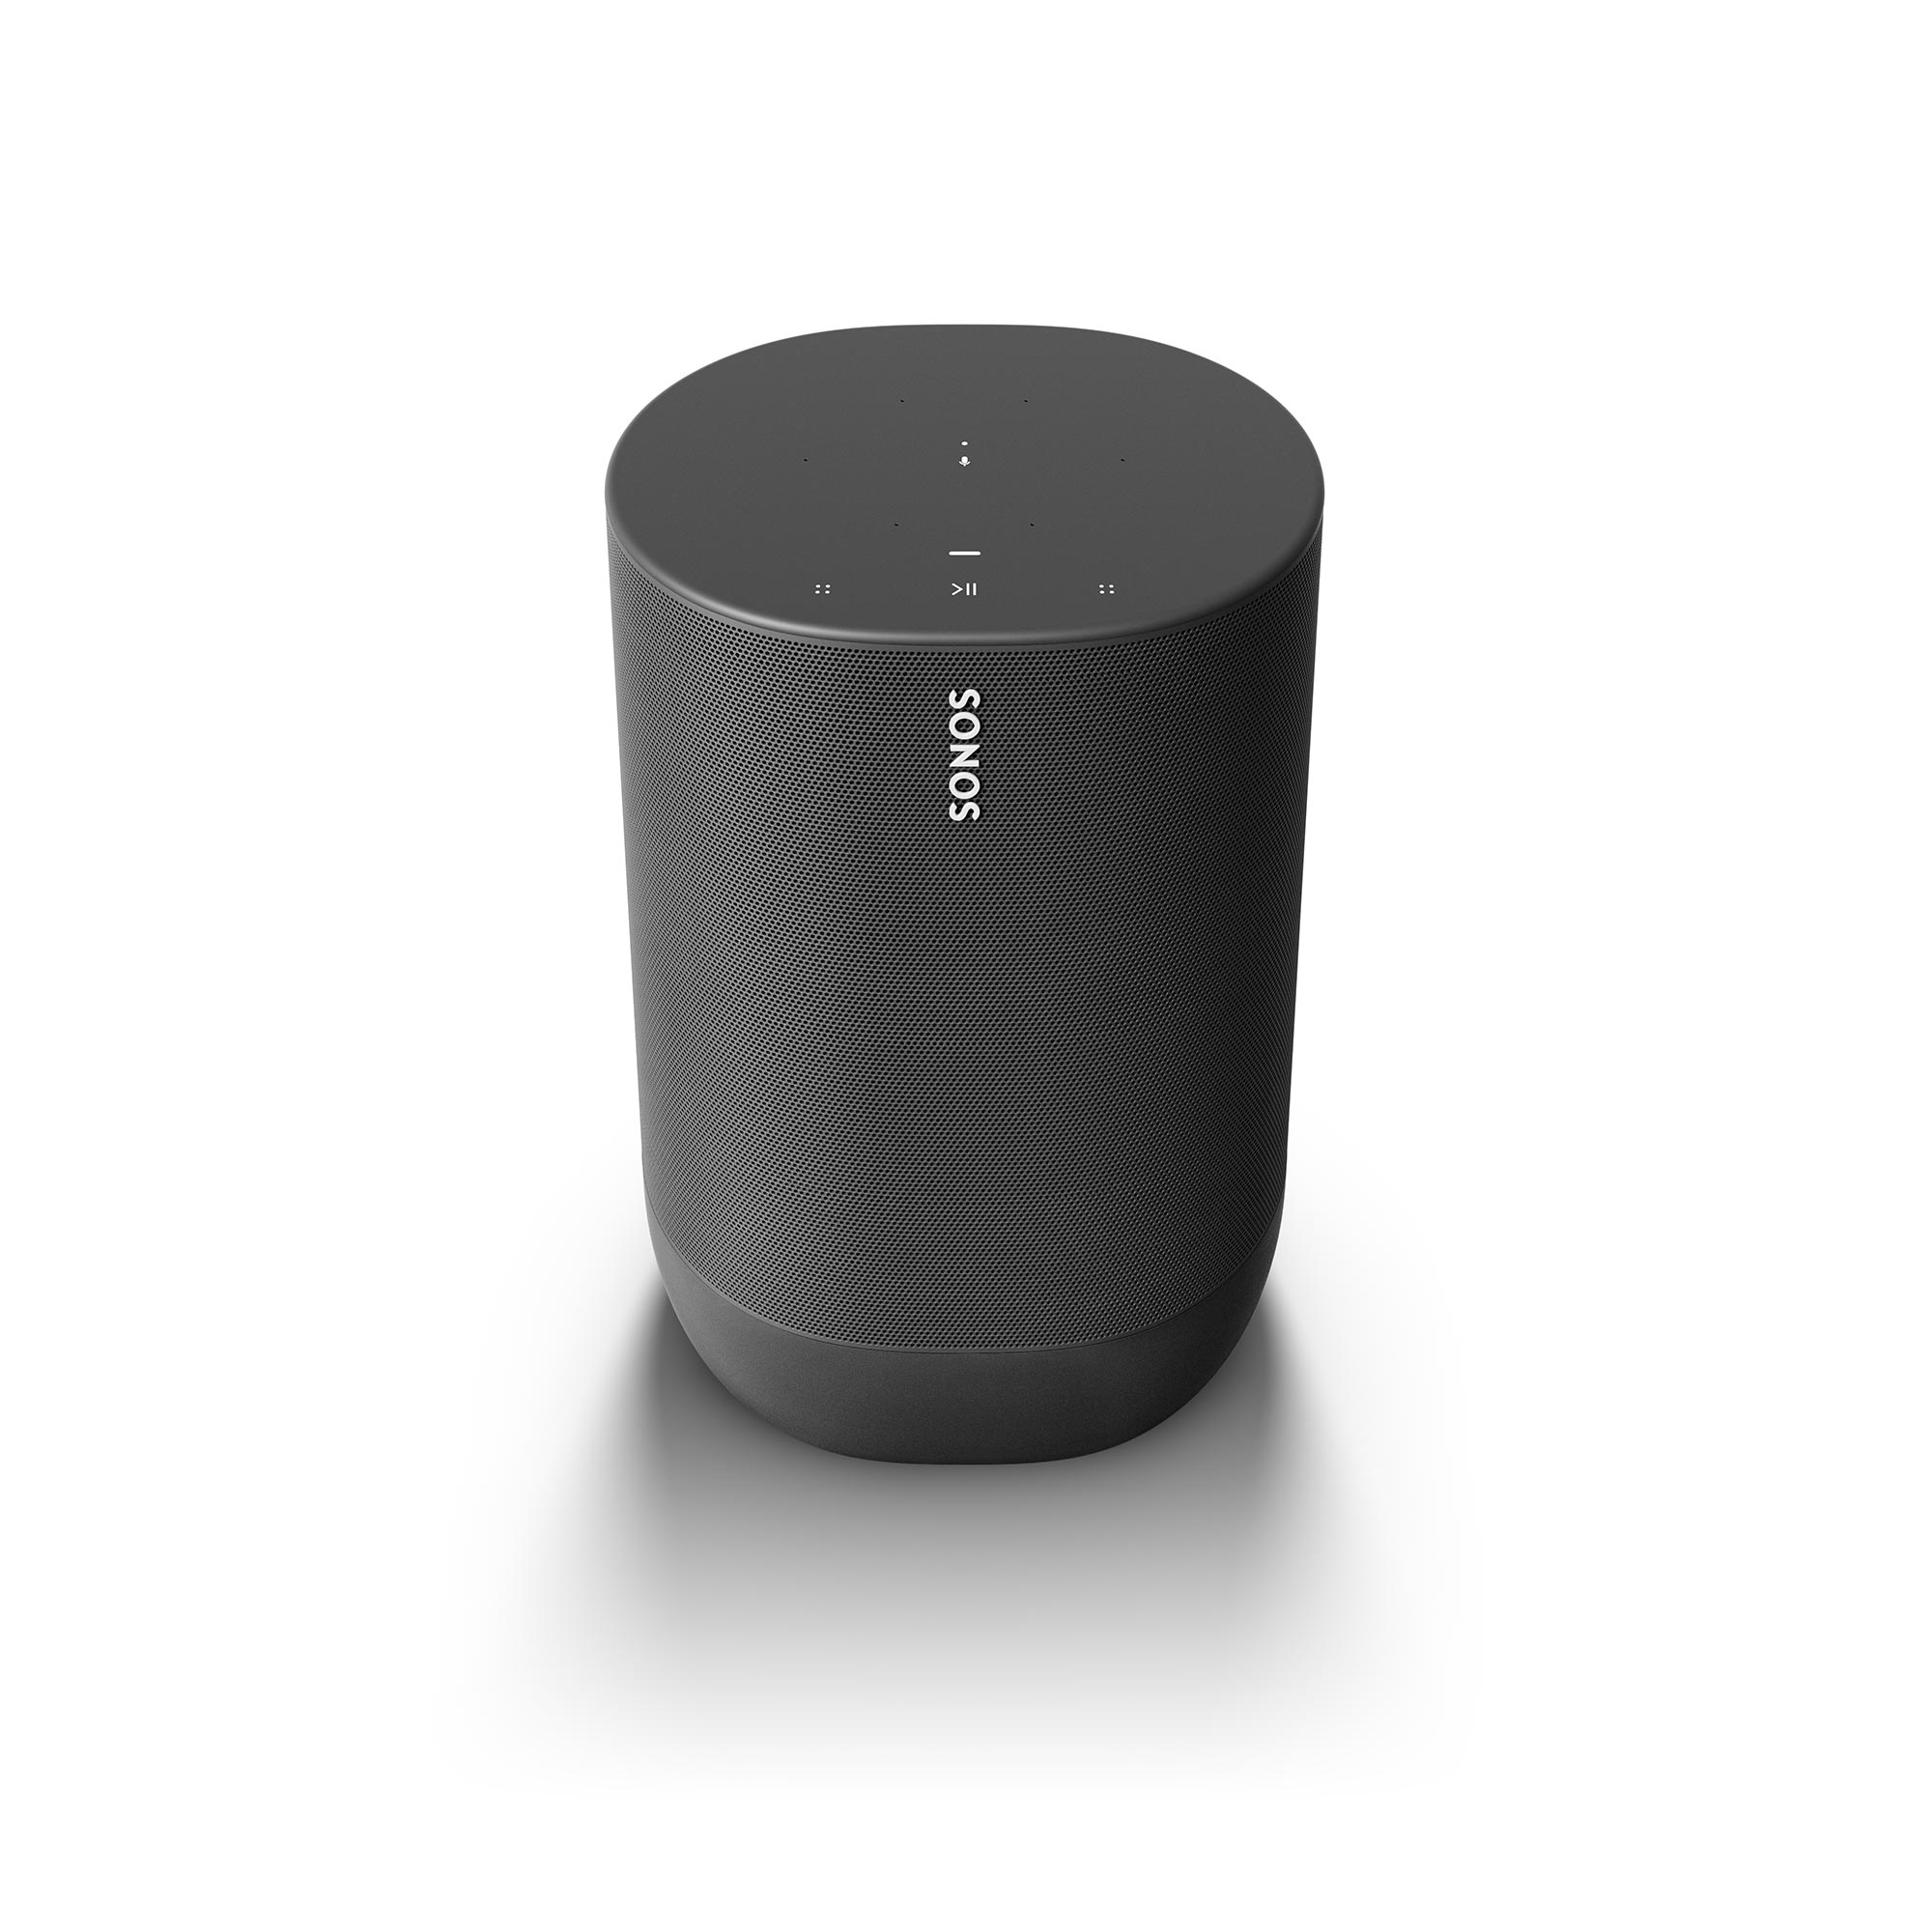 Sonos Move Is the Company's First Speaker With Wi-Fi and Bluetooth